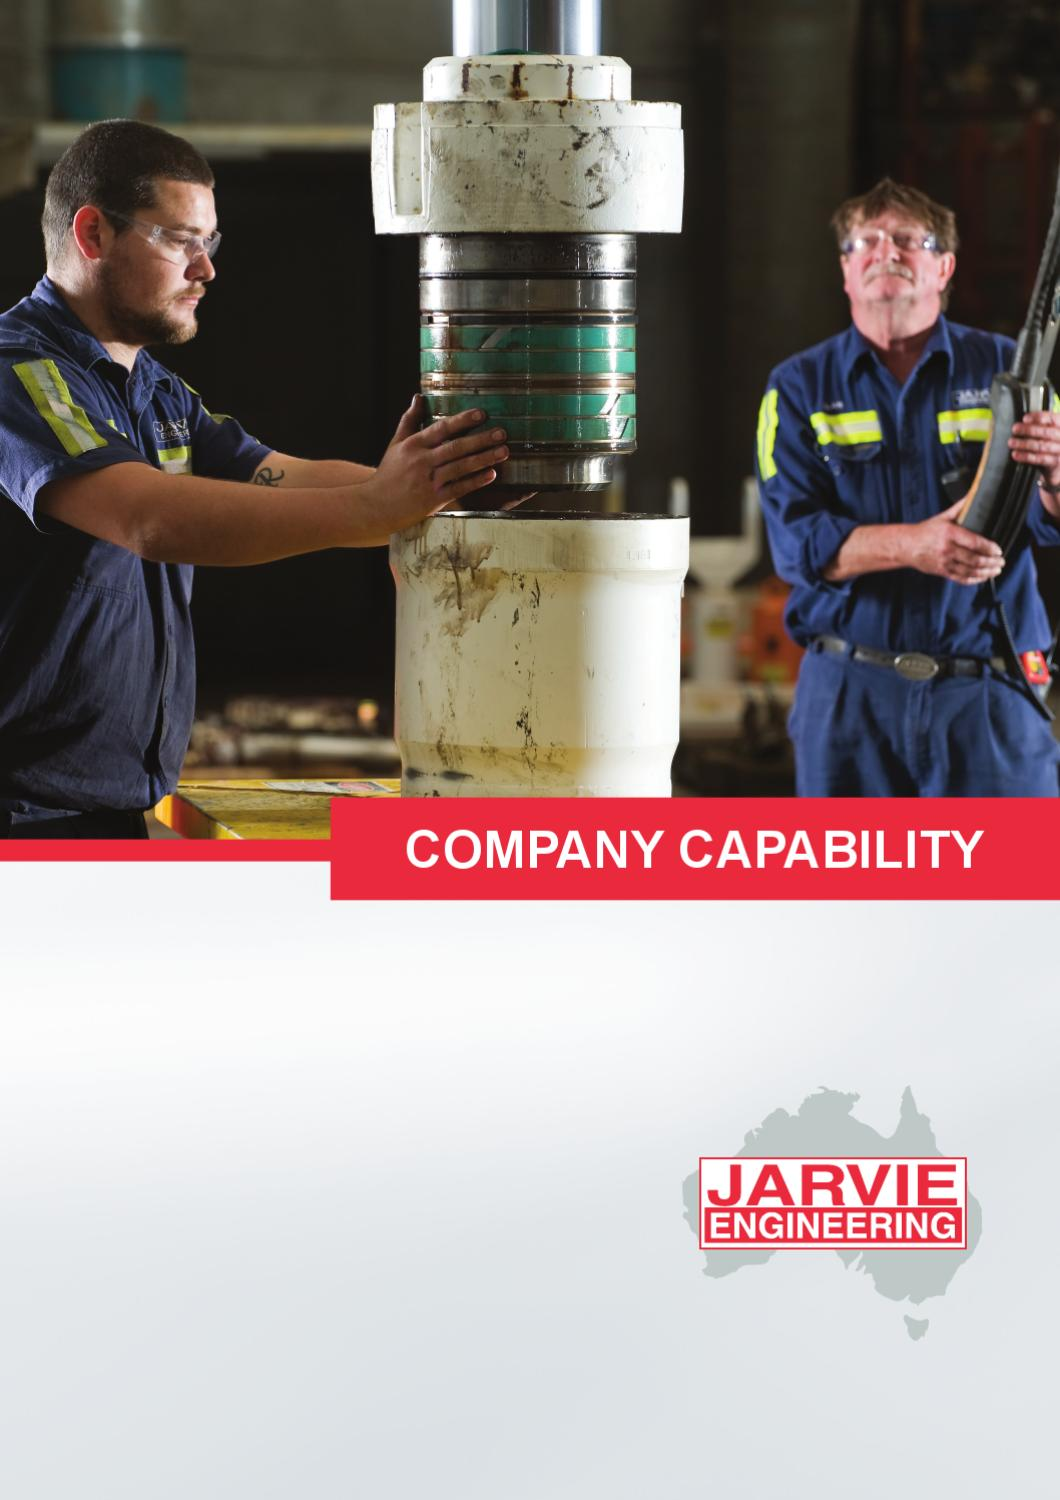 Jarvie Engineering Corporate Capability by MAP Marketing - issuu